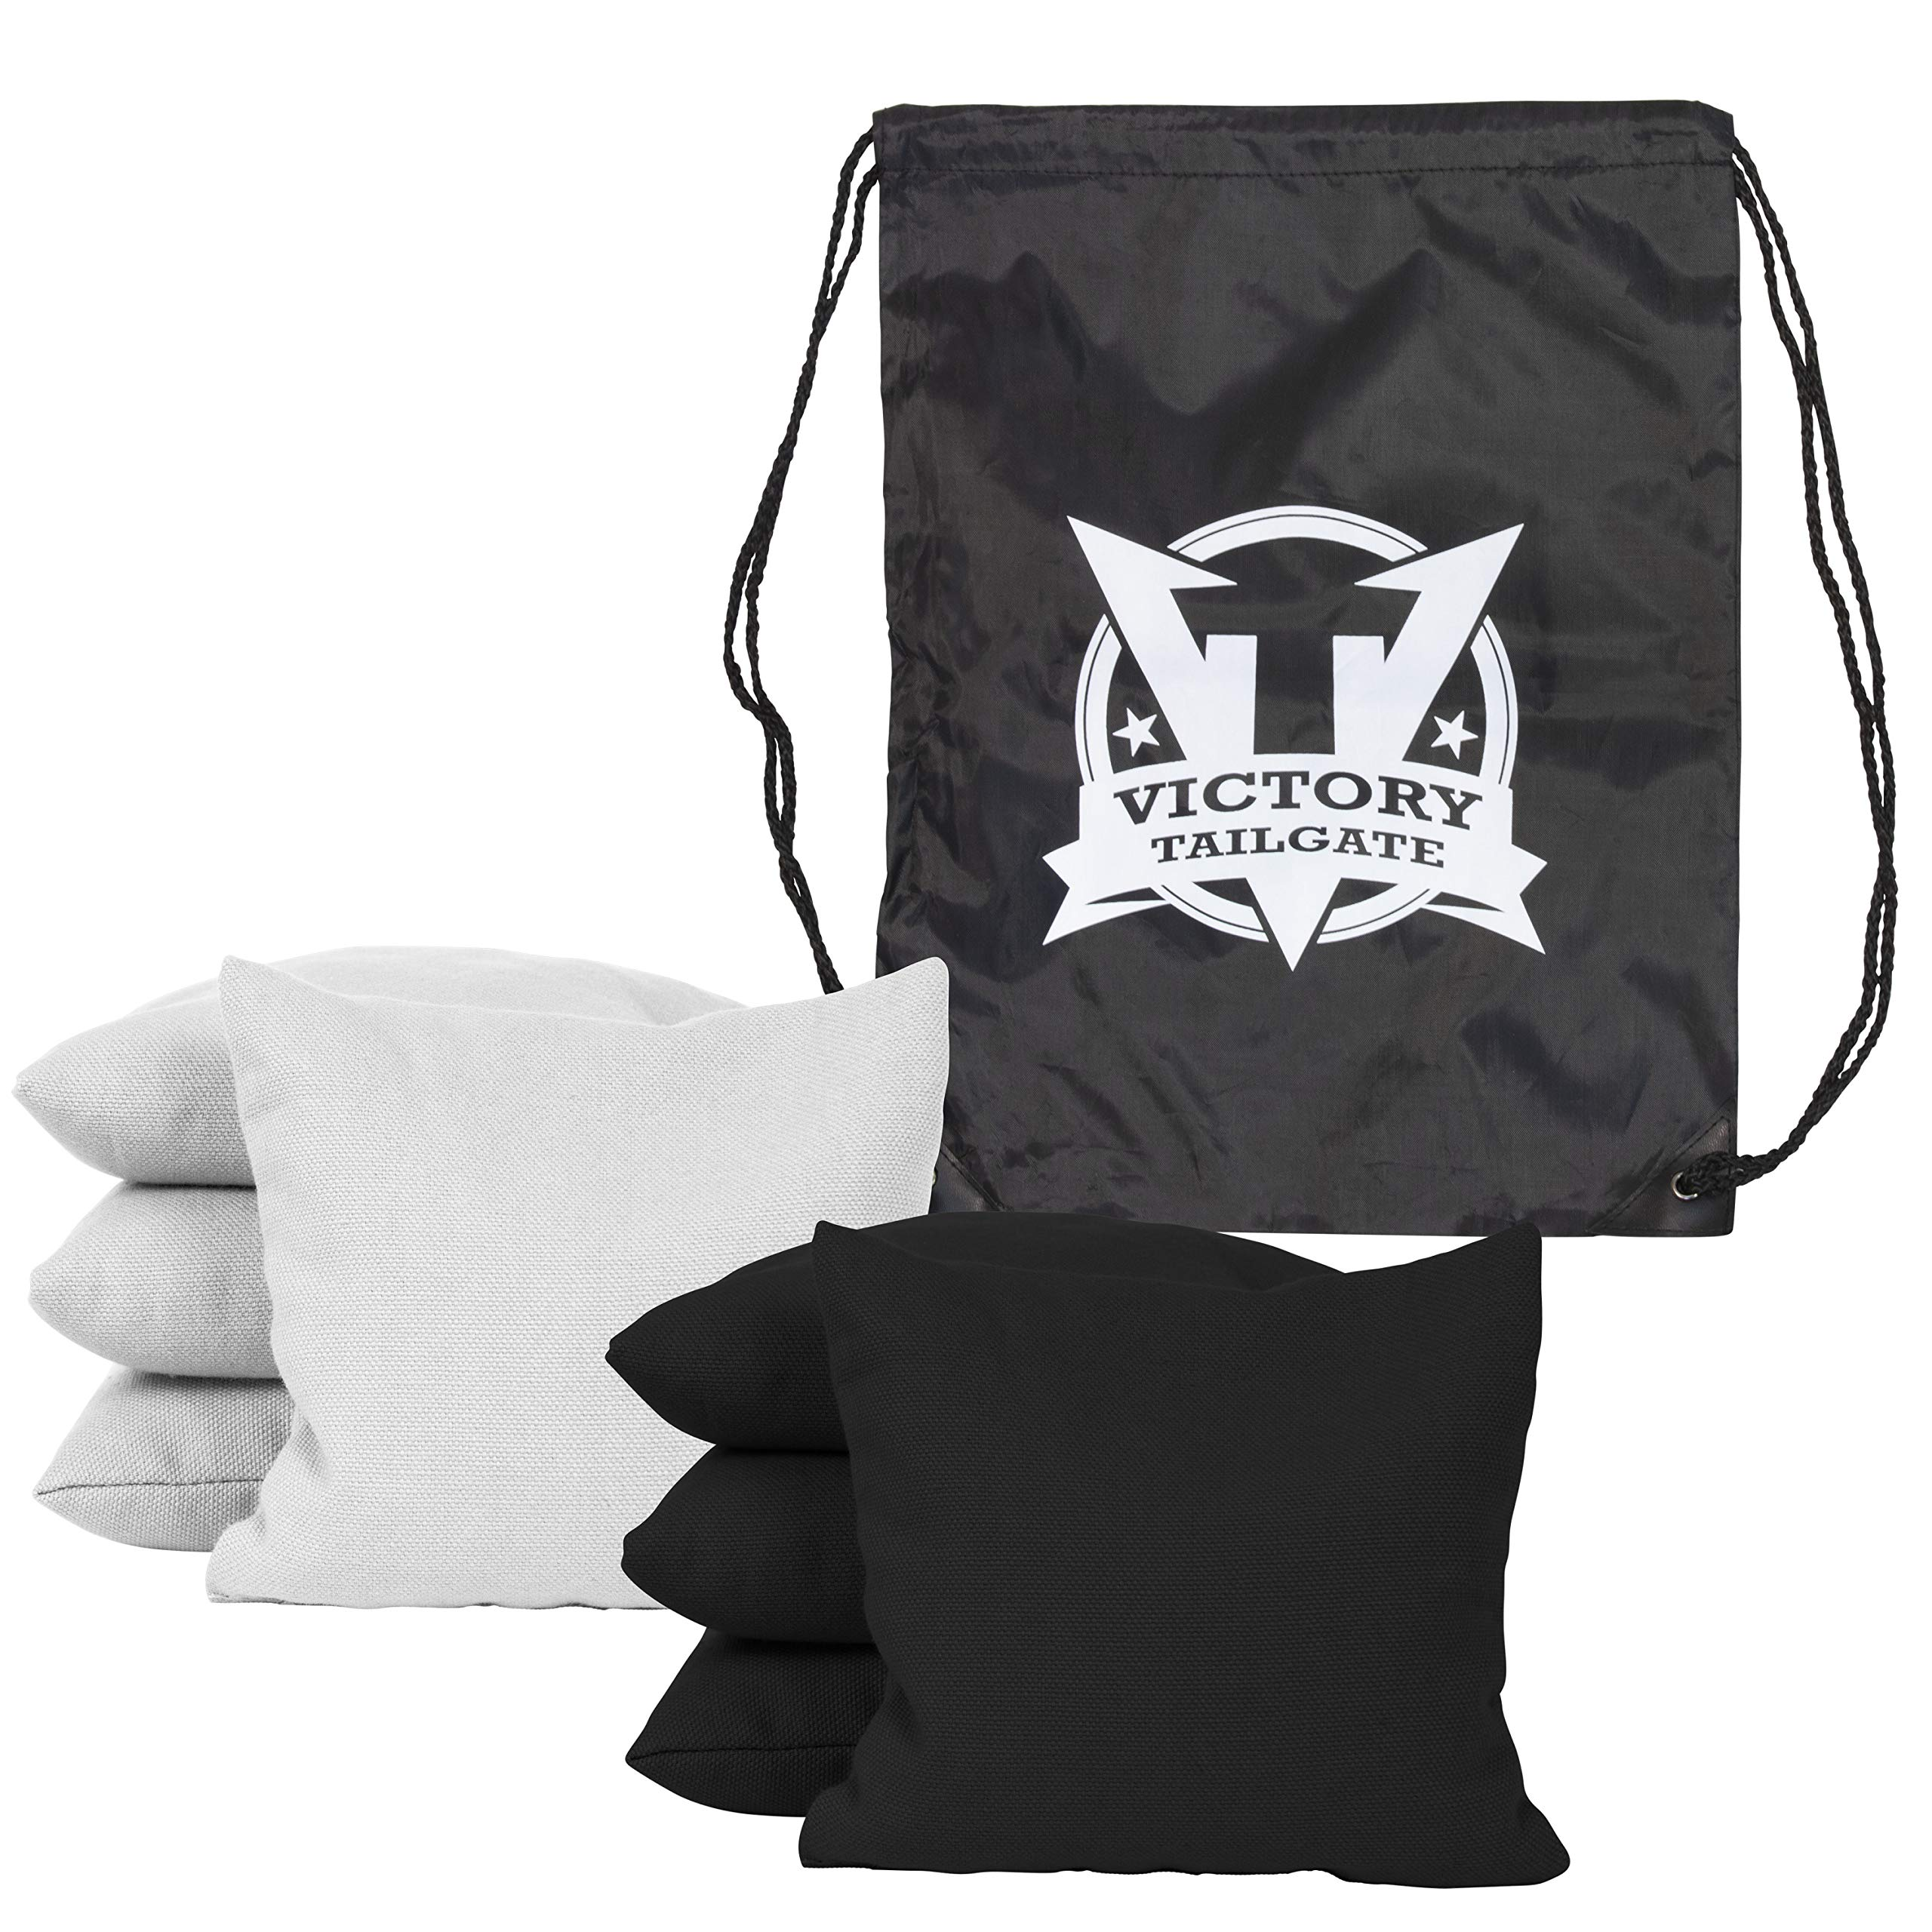 Victory Tailgate 8 Colored Corn Filled Regulation Cornhole Bags with Drawstring Pack (4 Black, 4 White)